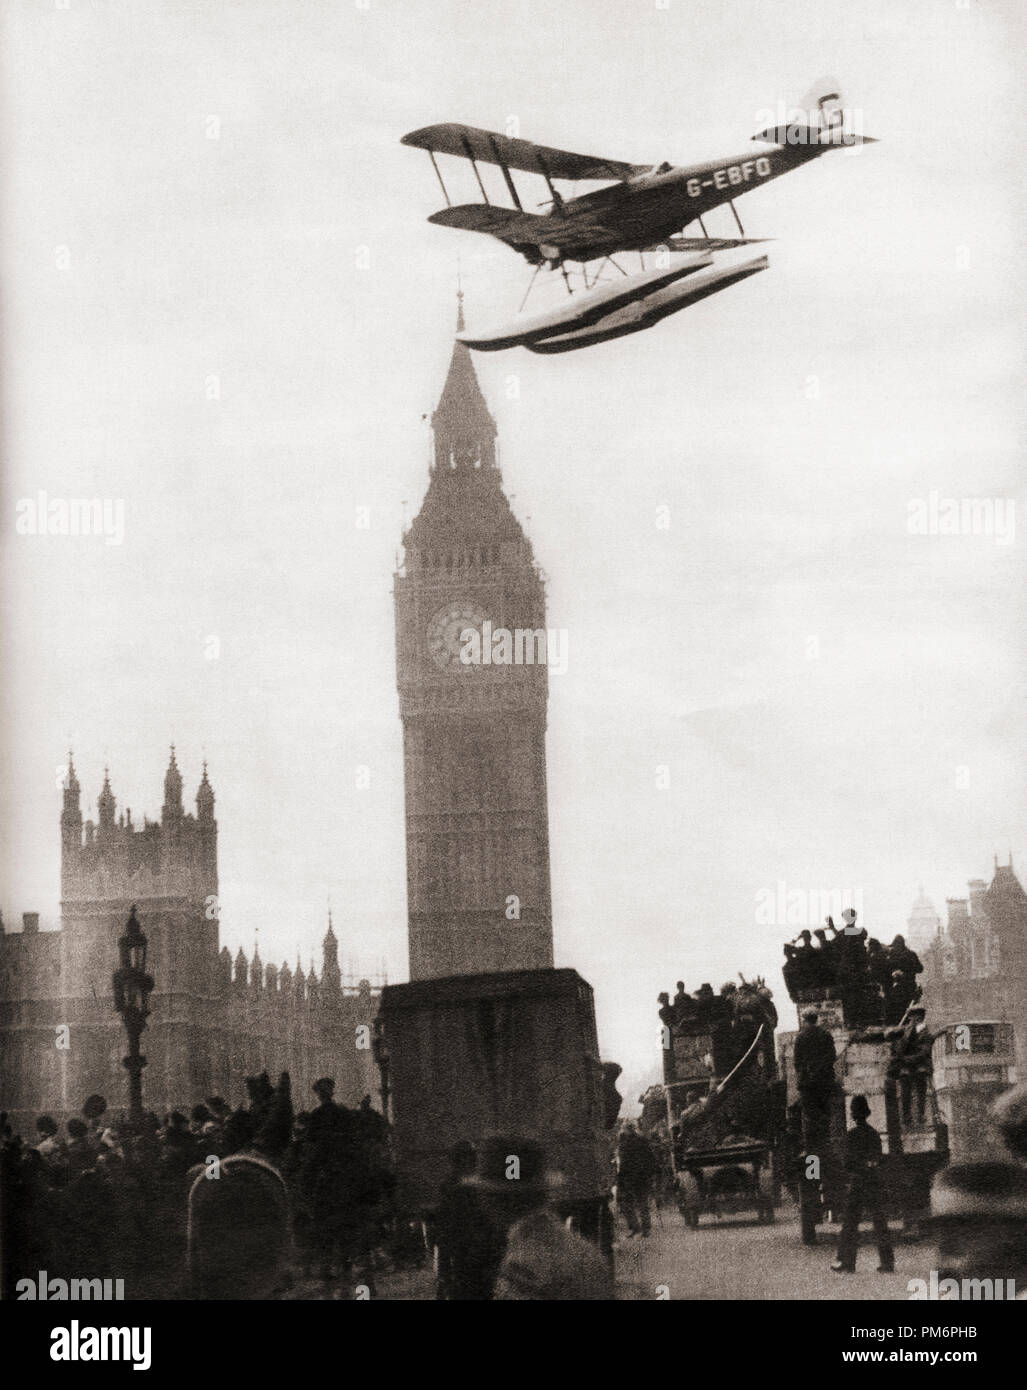 Alan Cobham coming in to land on the River Thames, London in his de Havilland DH.50J floatplane after flying to Australia and back in 1926.  From These Tremendous Years, published 1938. - Stock Image